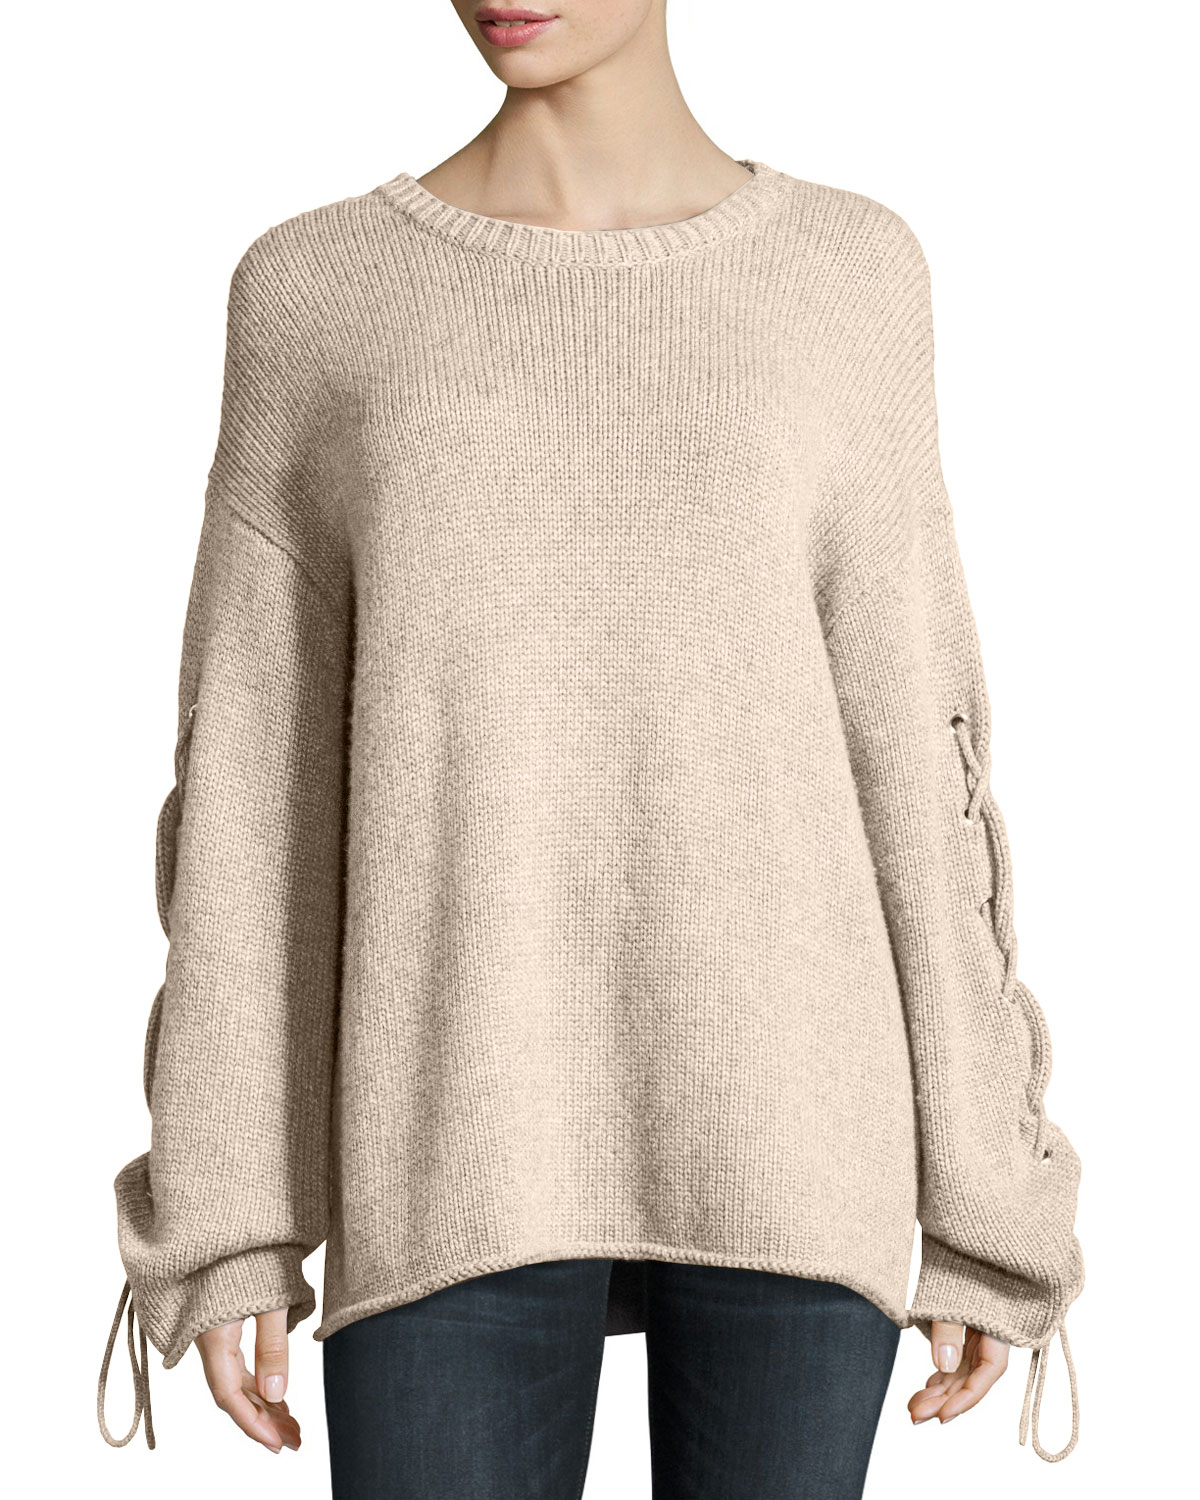 f55ad3be26591 See by Chloe Lace-Up Sleeves Cable-Knit Pullover Sweater